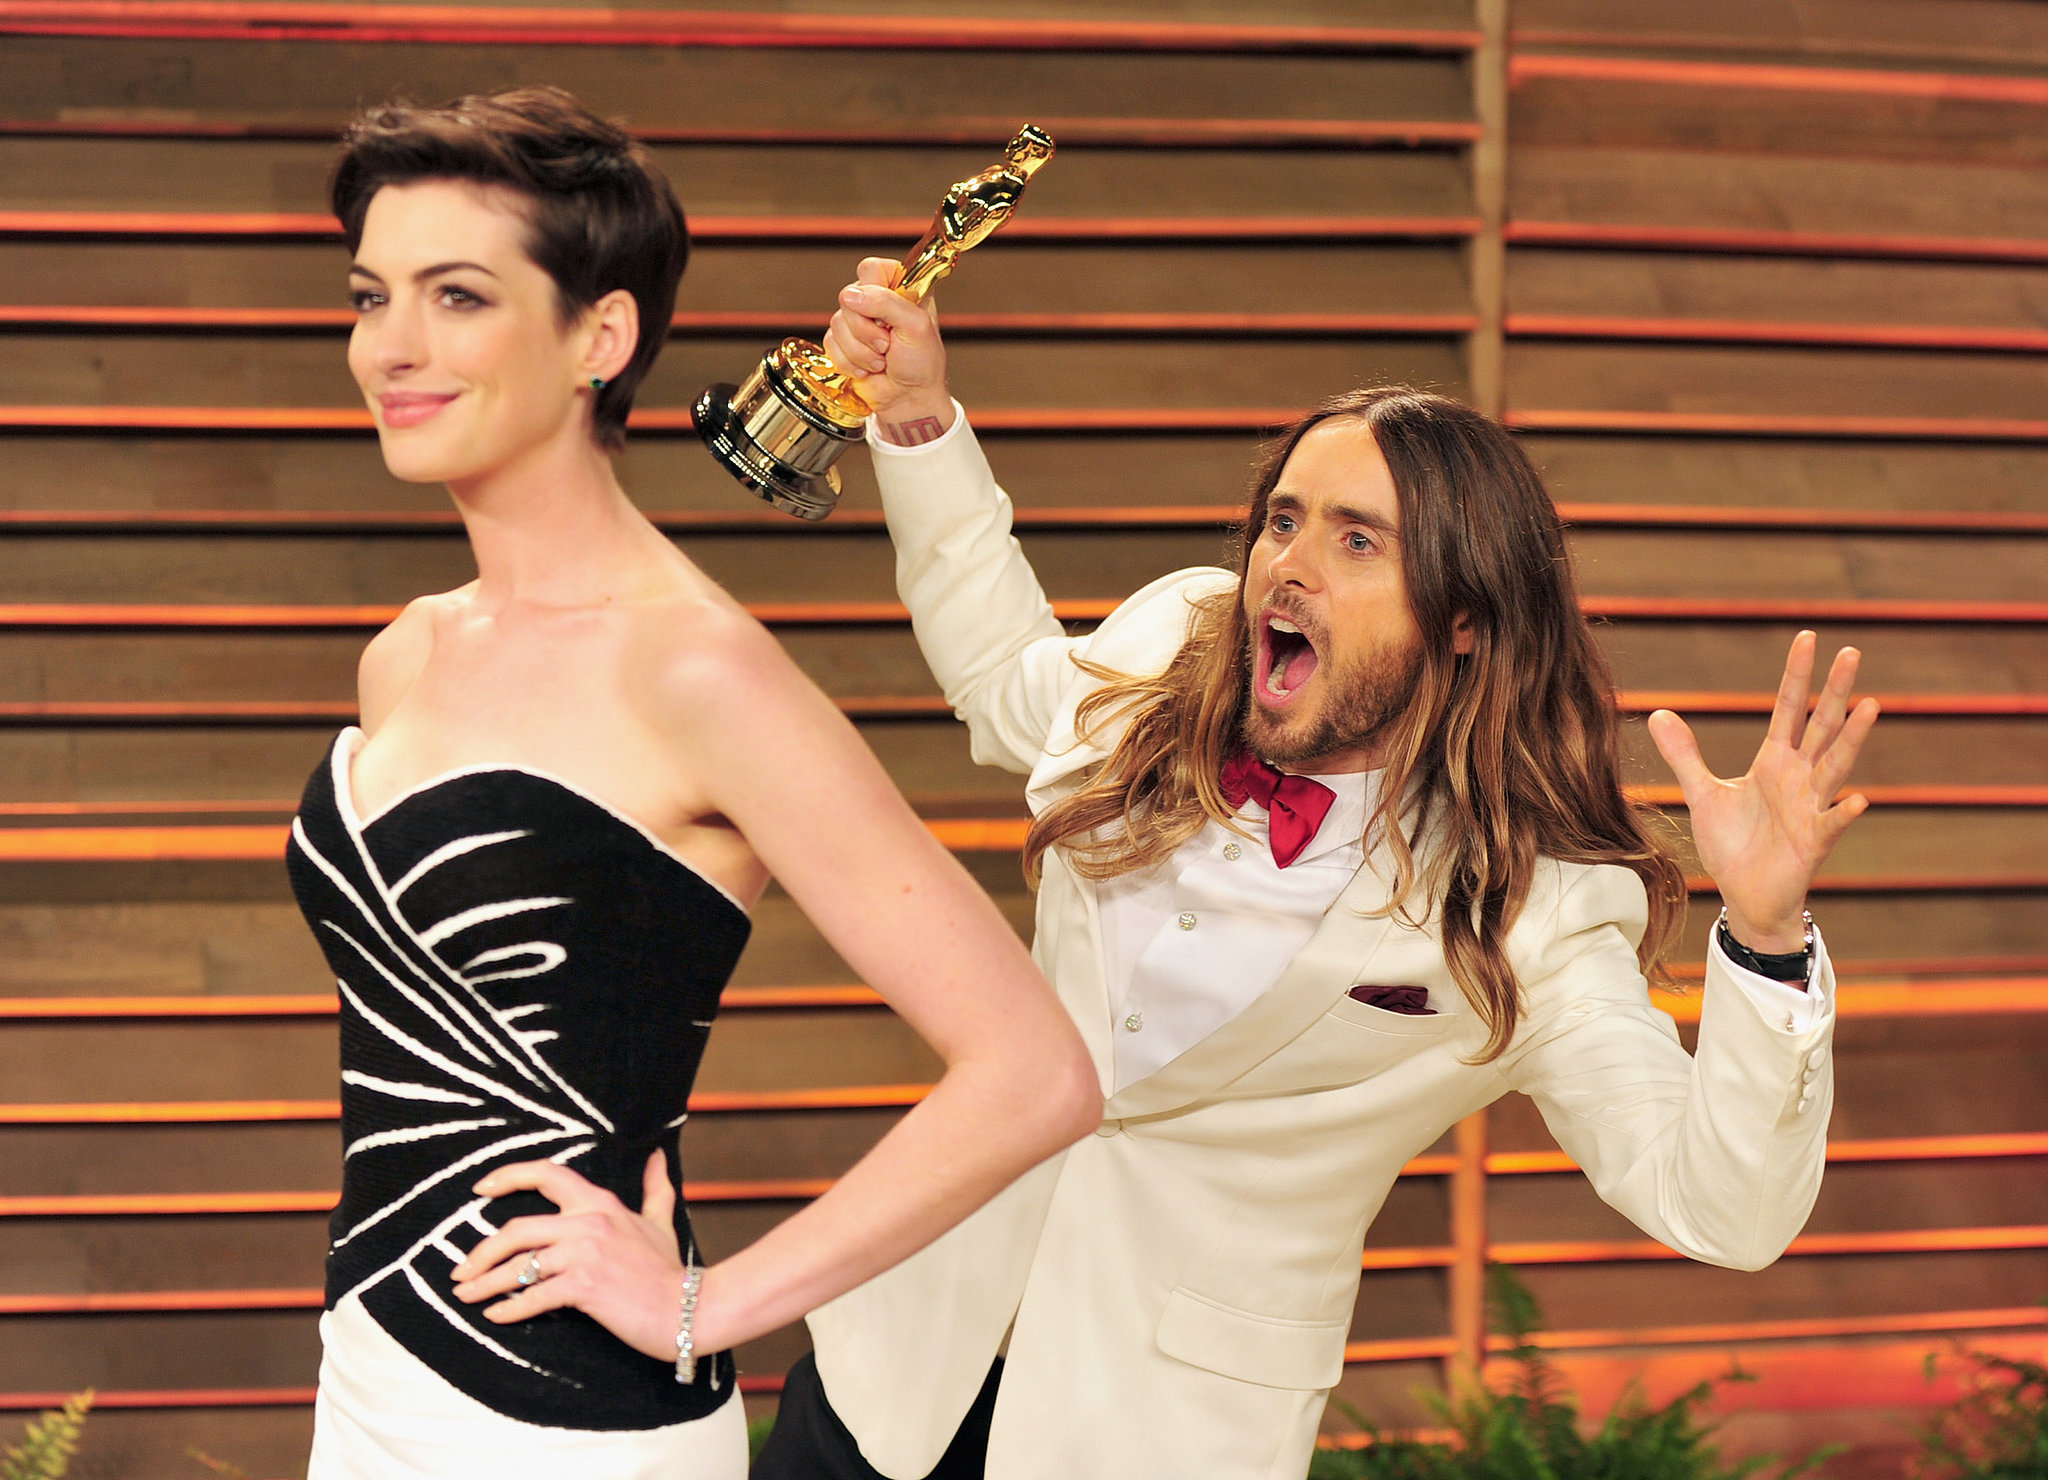 Jared Leto and His Oscar Photobombing Anne Hathaway